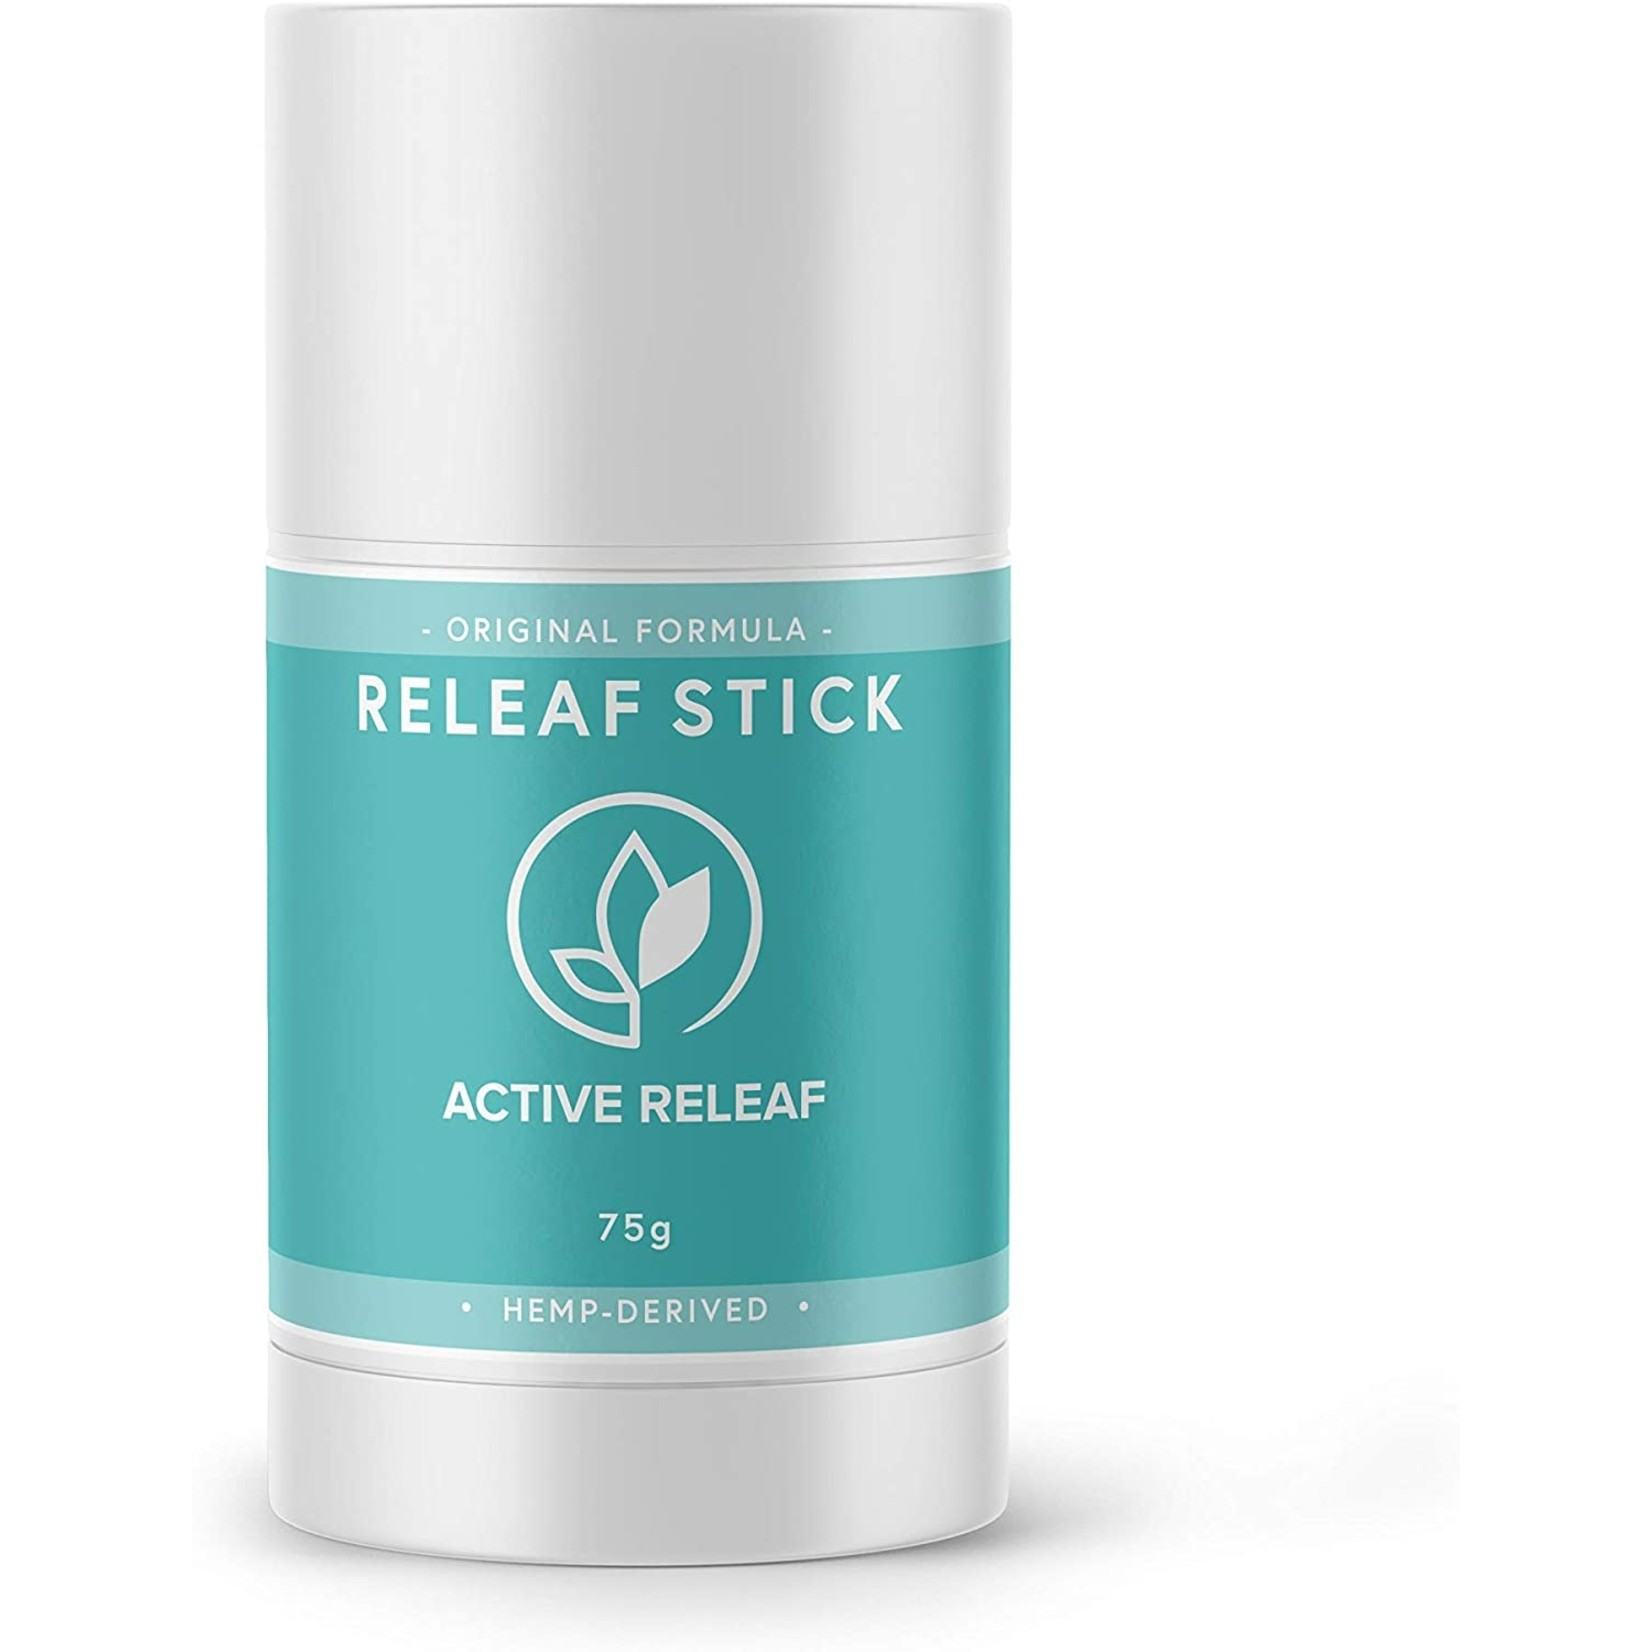 ACTIVE RELEAF Wellness Active Releaf Stick